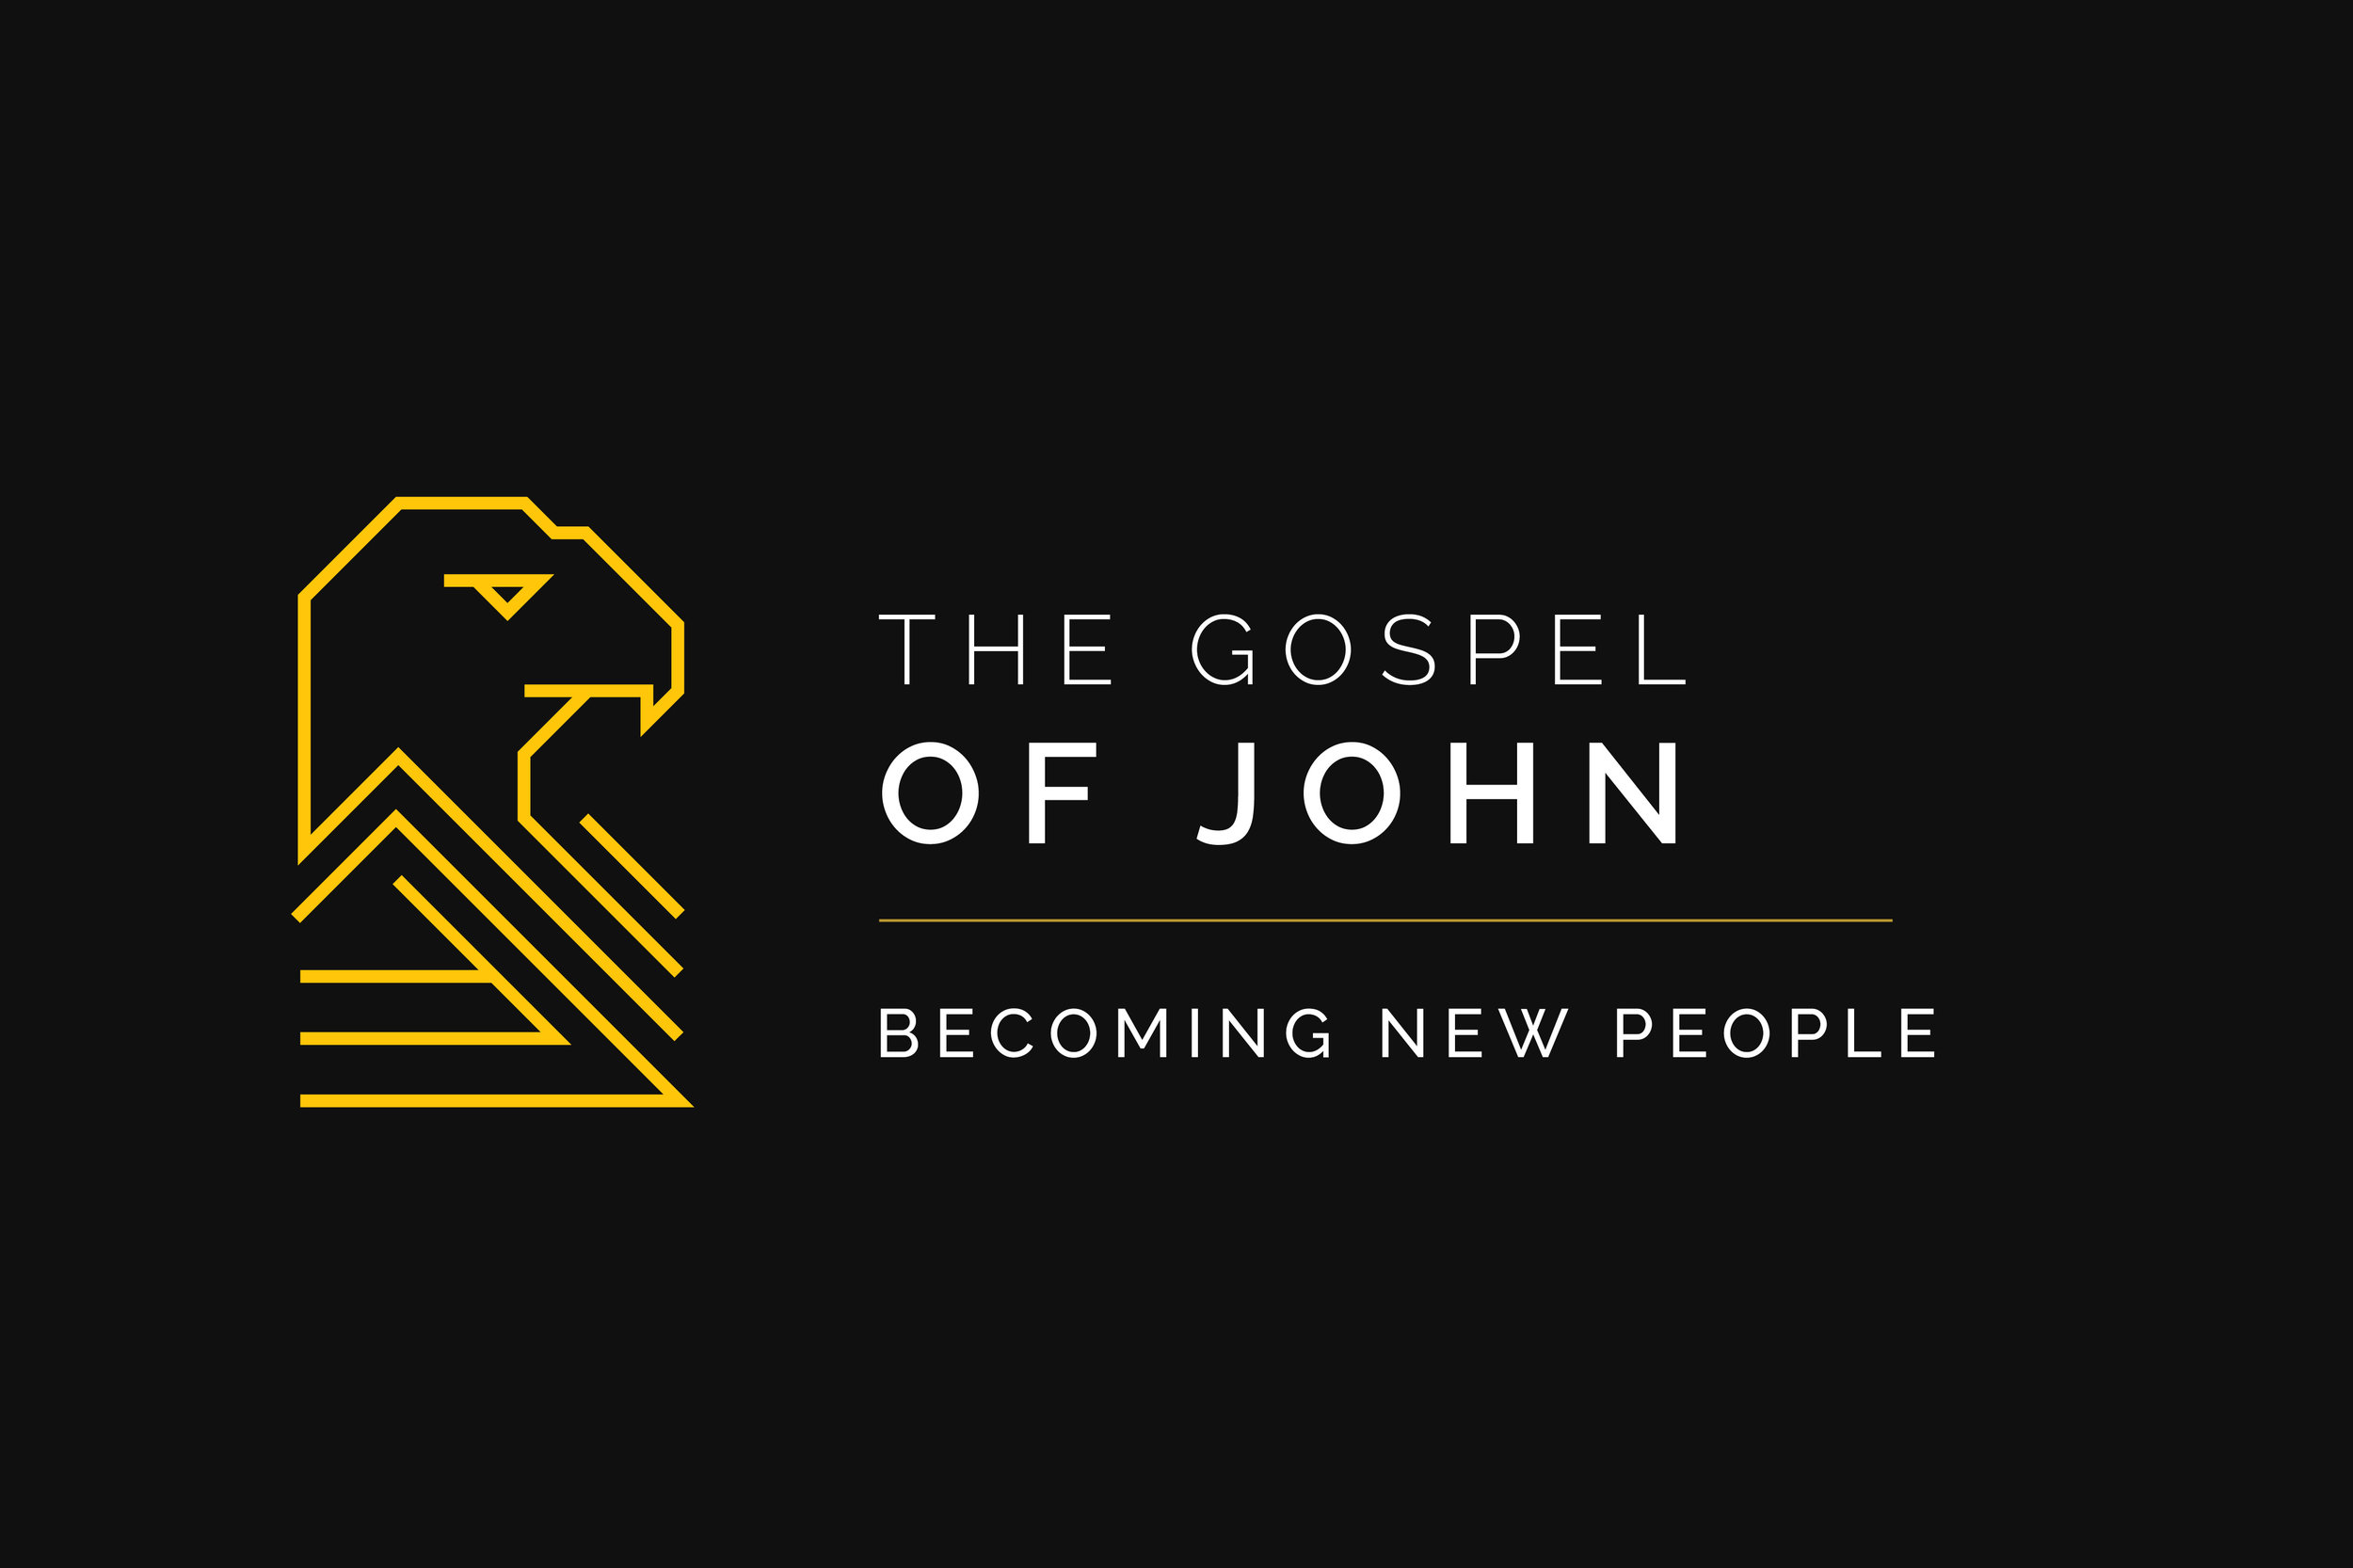 2-18--Becoming-New-Peopla-The-Gospel-of-John.jpg